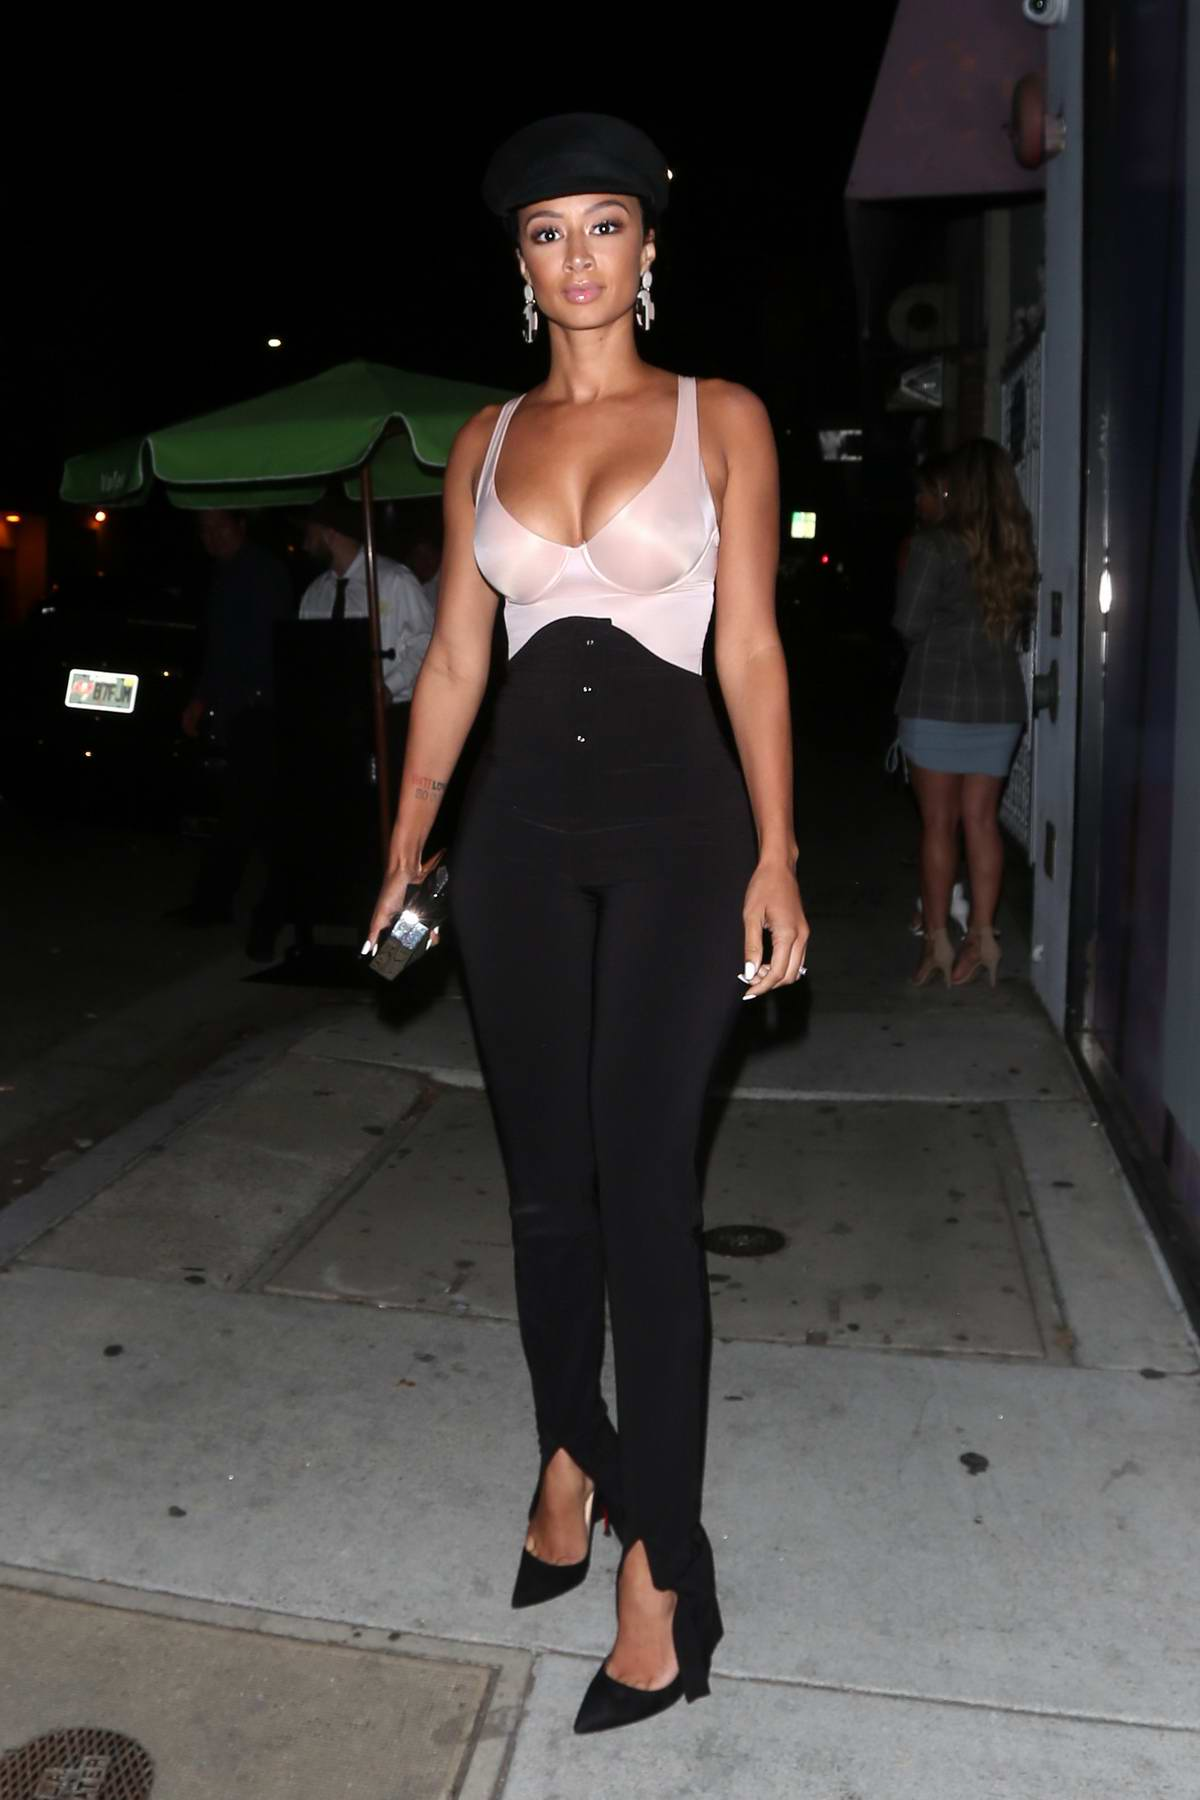 Draya Michele attending the Karl Lagerfeld x Kaia launch event in West Hollywood, Los Angeles